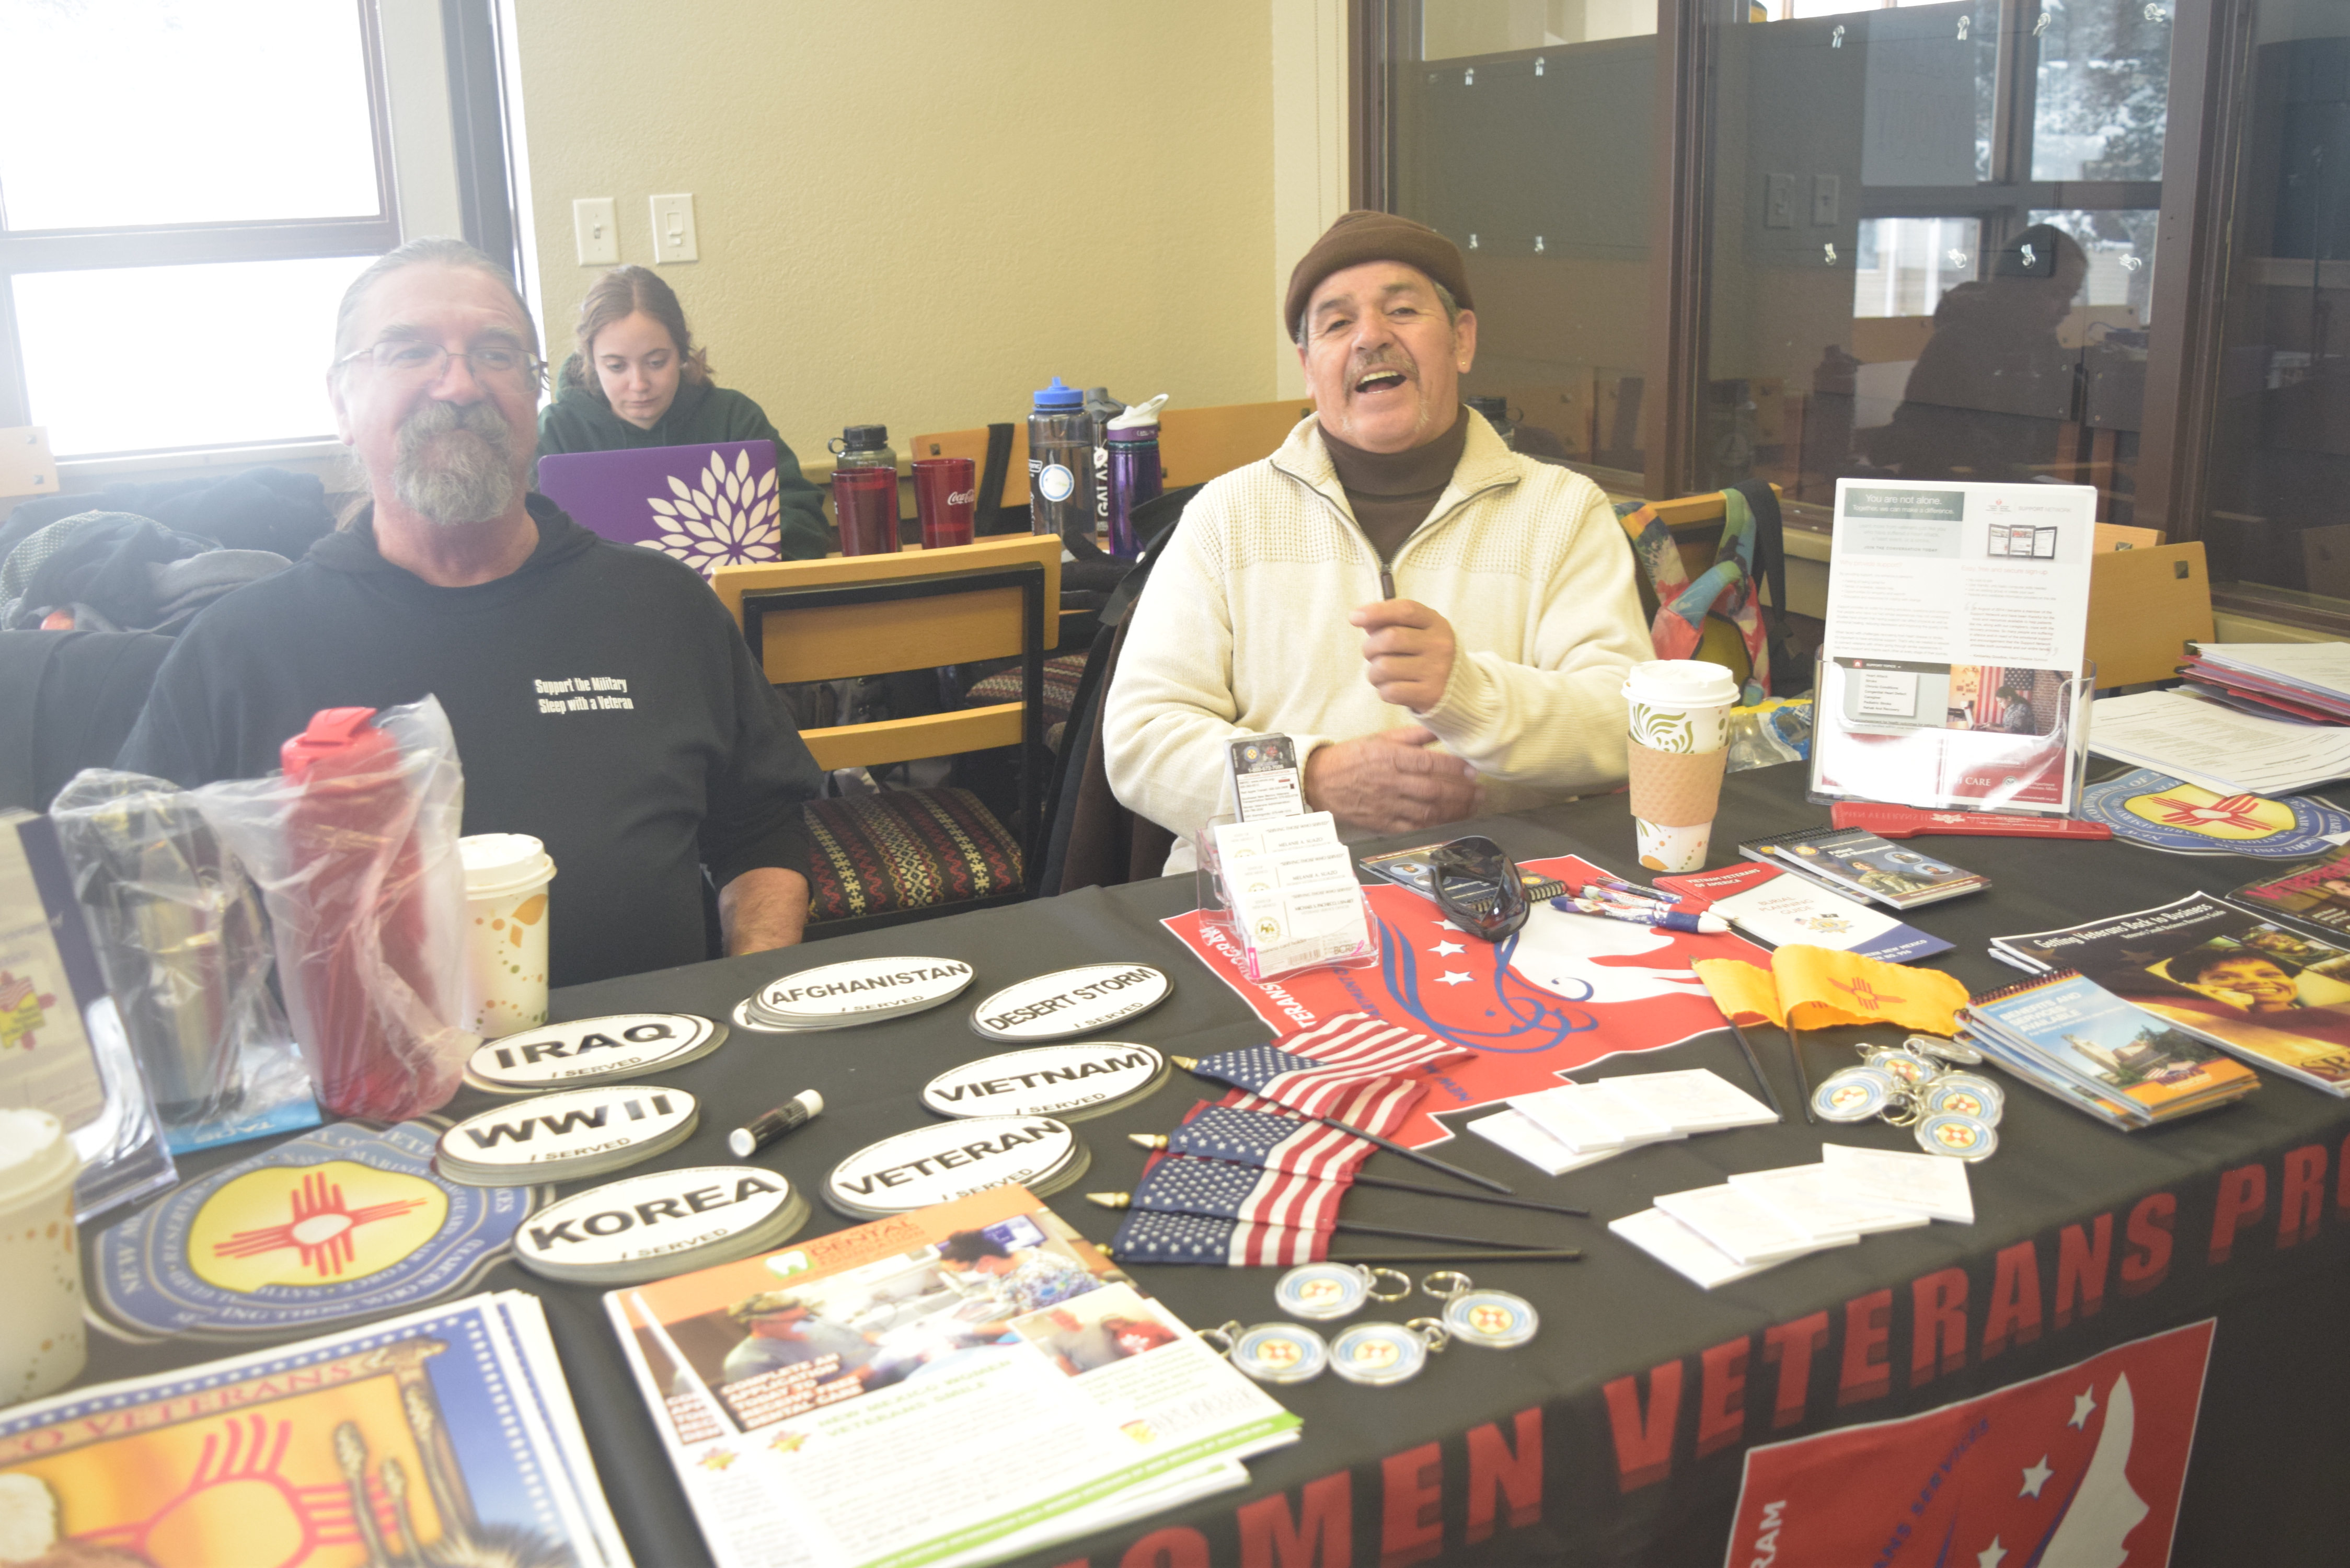 Two cheerful men sit behind a table with veteran brochures, patches, bumper stickers, keychains, and flags